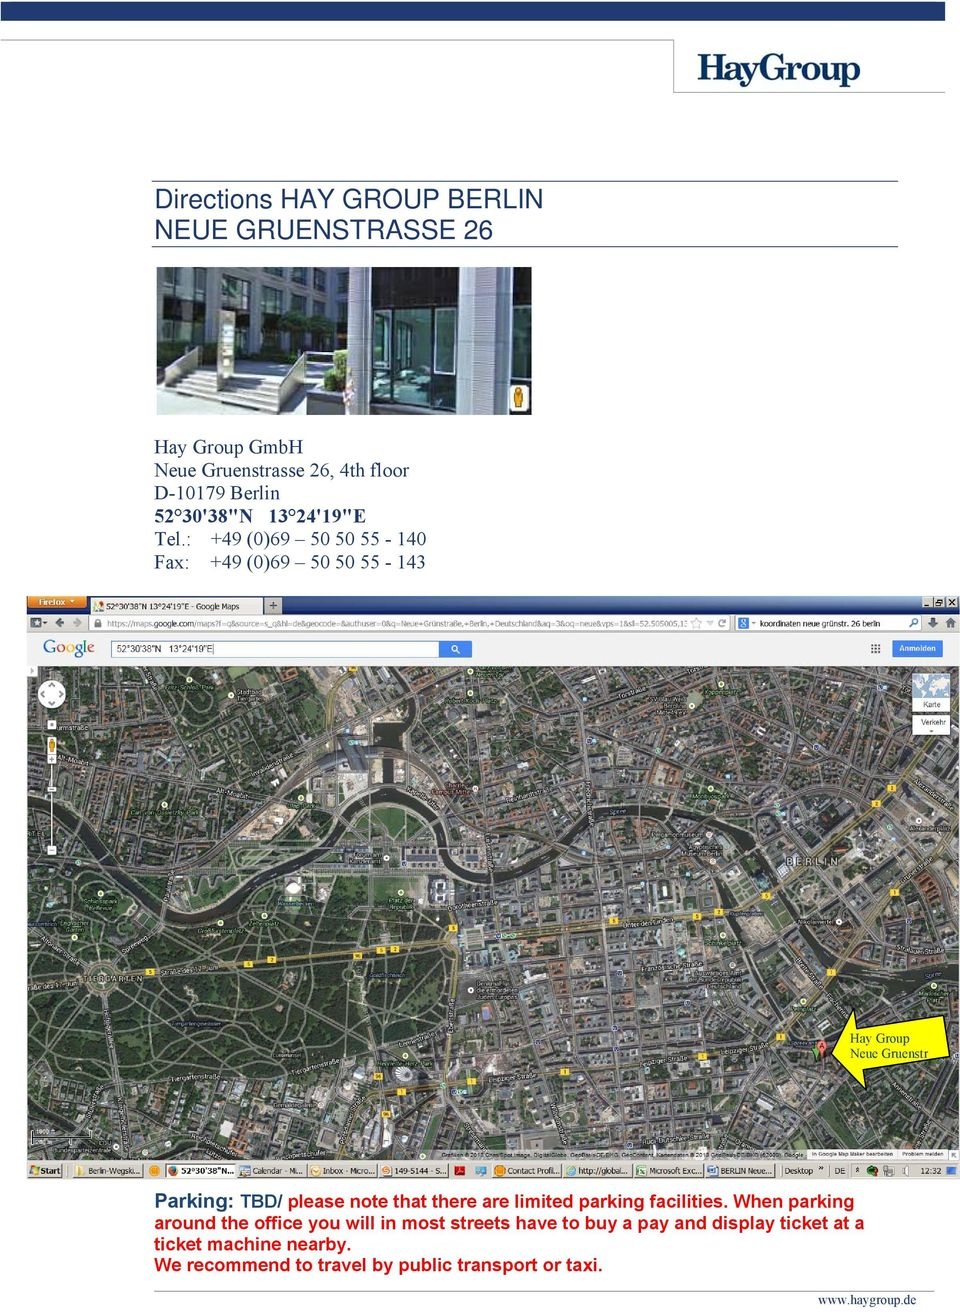 : +49 (0)69 50 50 55-140 Fax: +49 (0)69 50 50 55-143 Neue Gruenstr Parking: TBD/ please note that there are